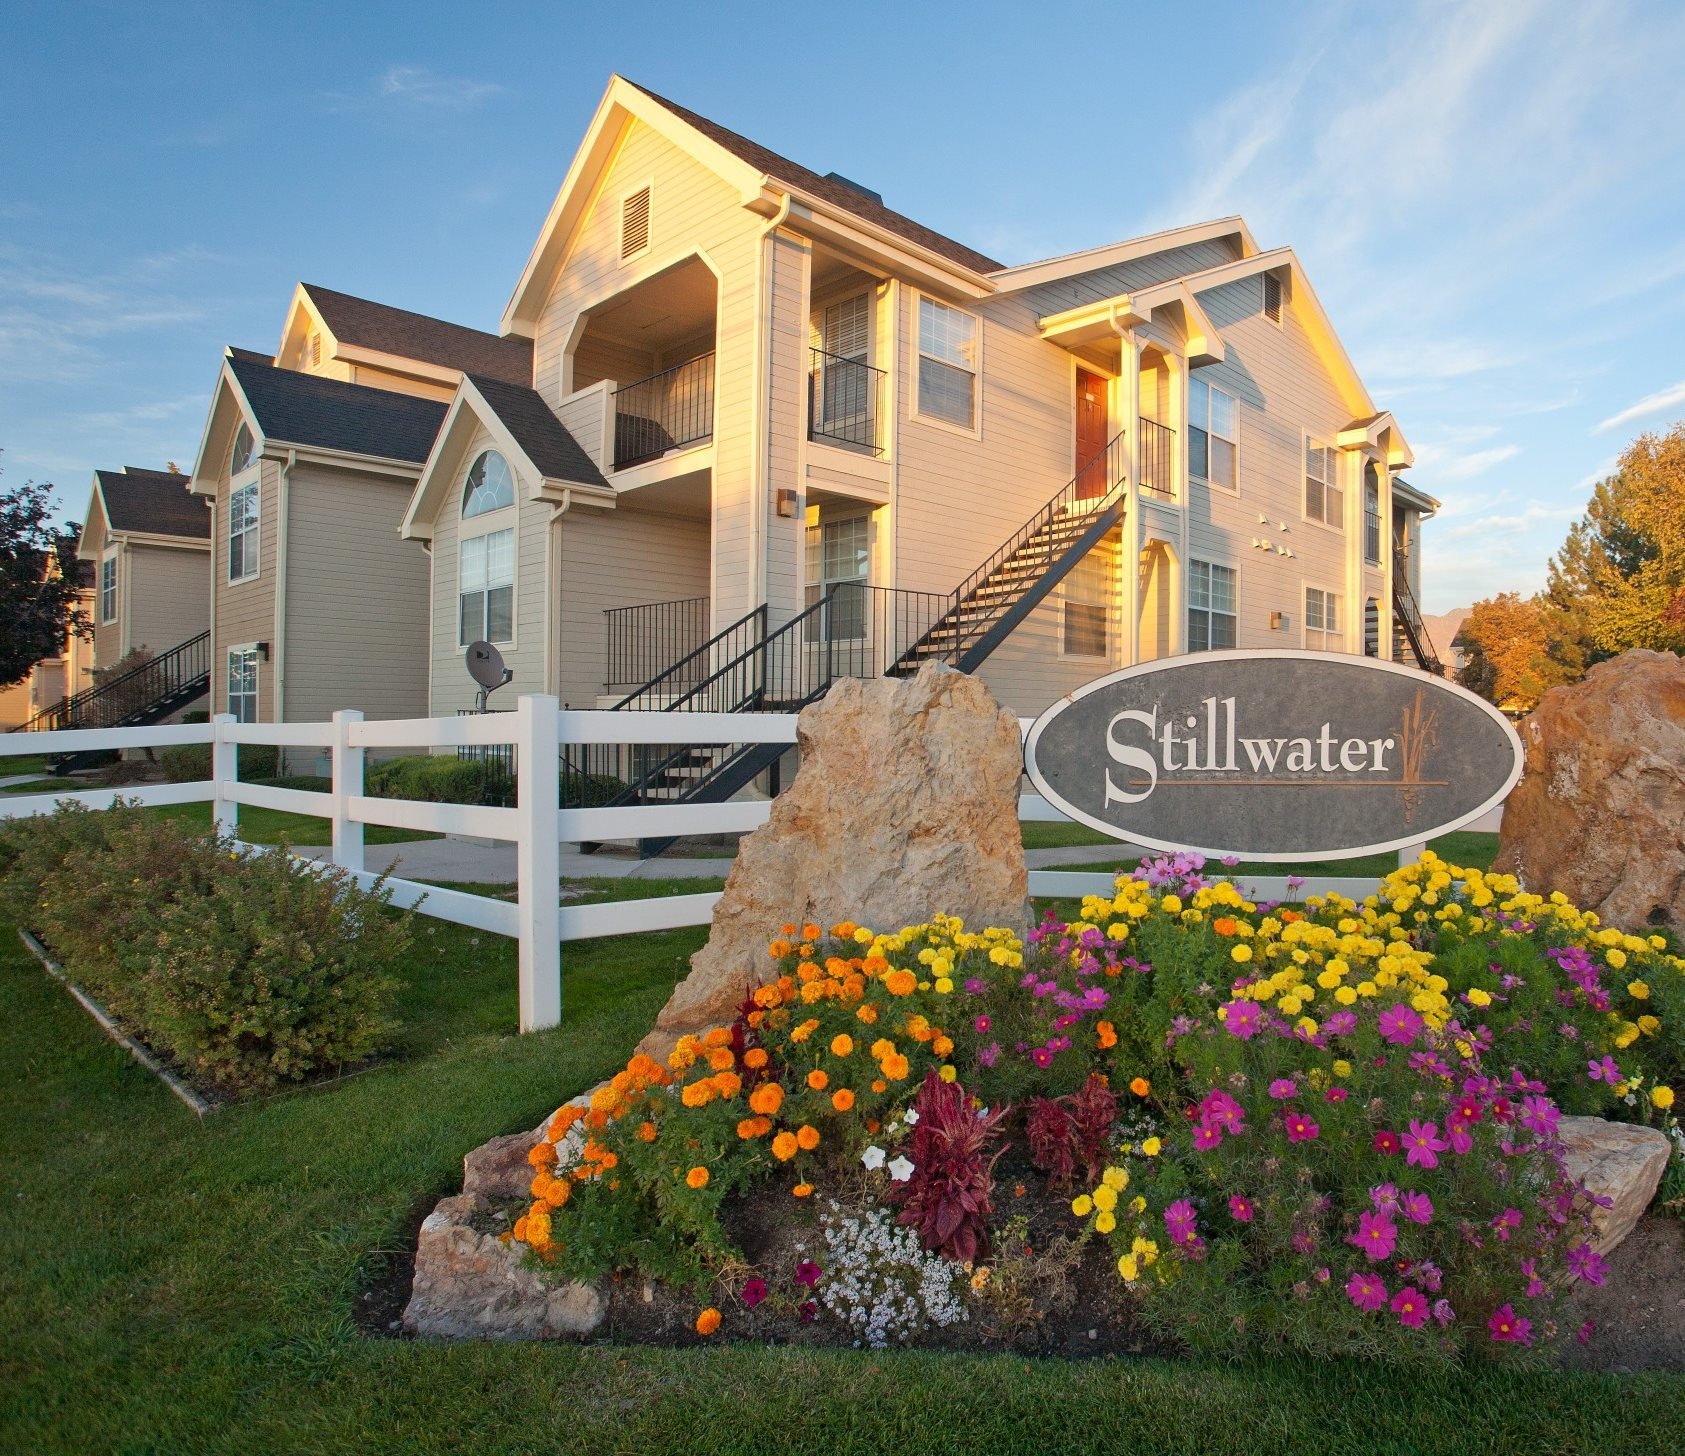 "Building exterior with a sign that says ""Stillwater Apartments"" and colorful flowers in front"